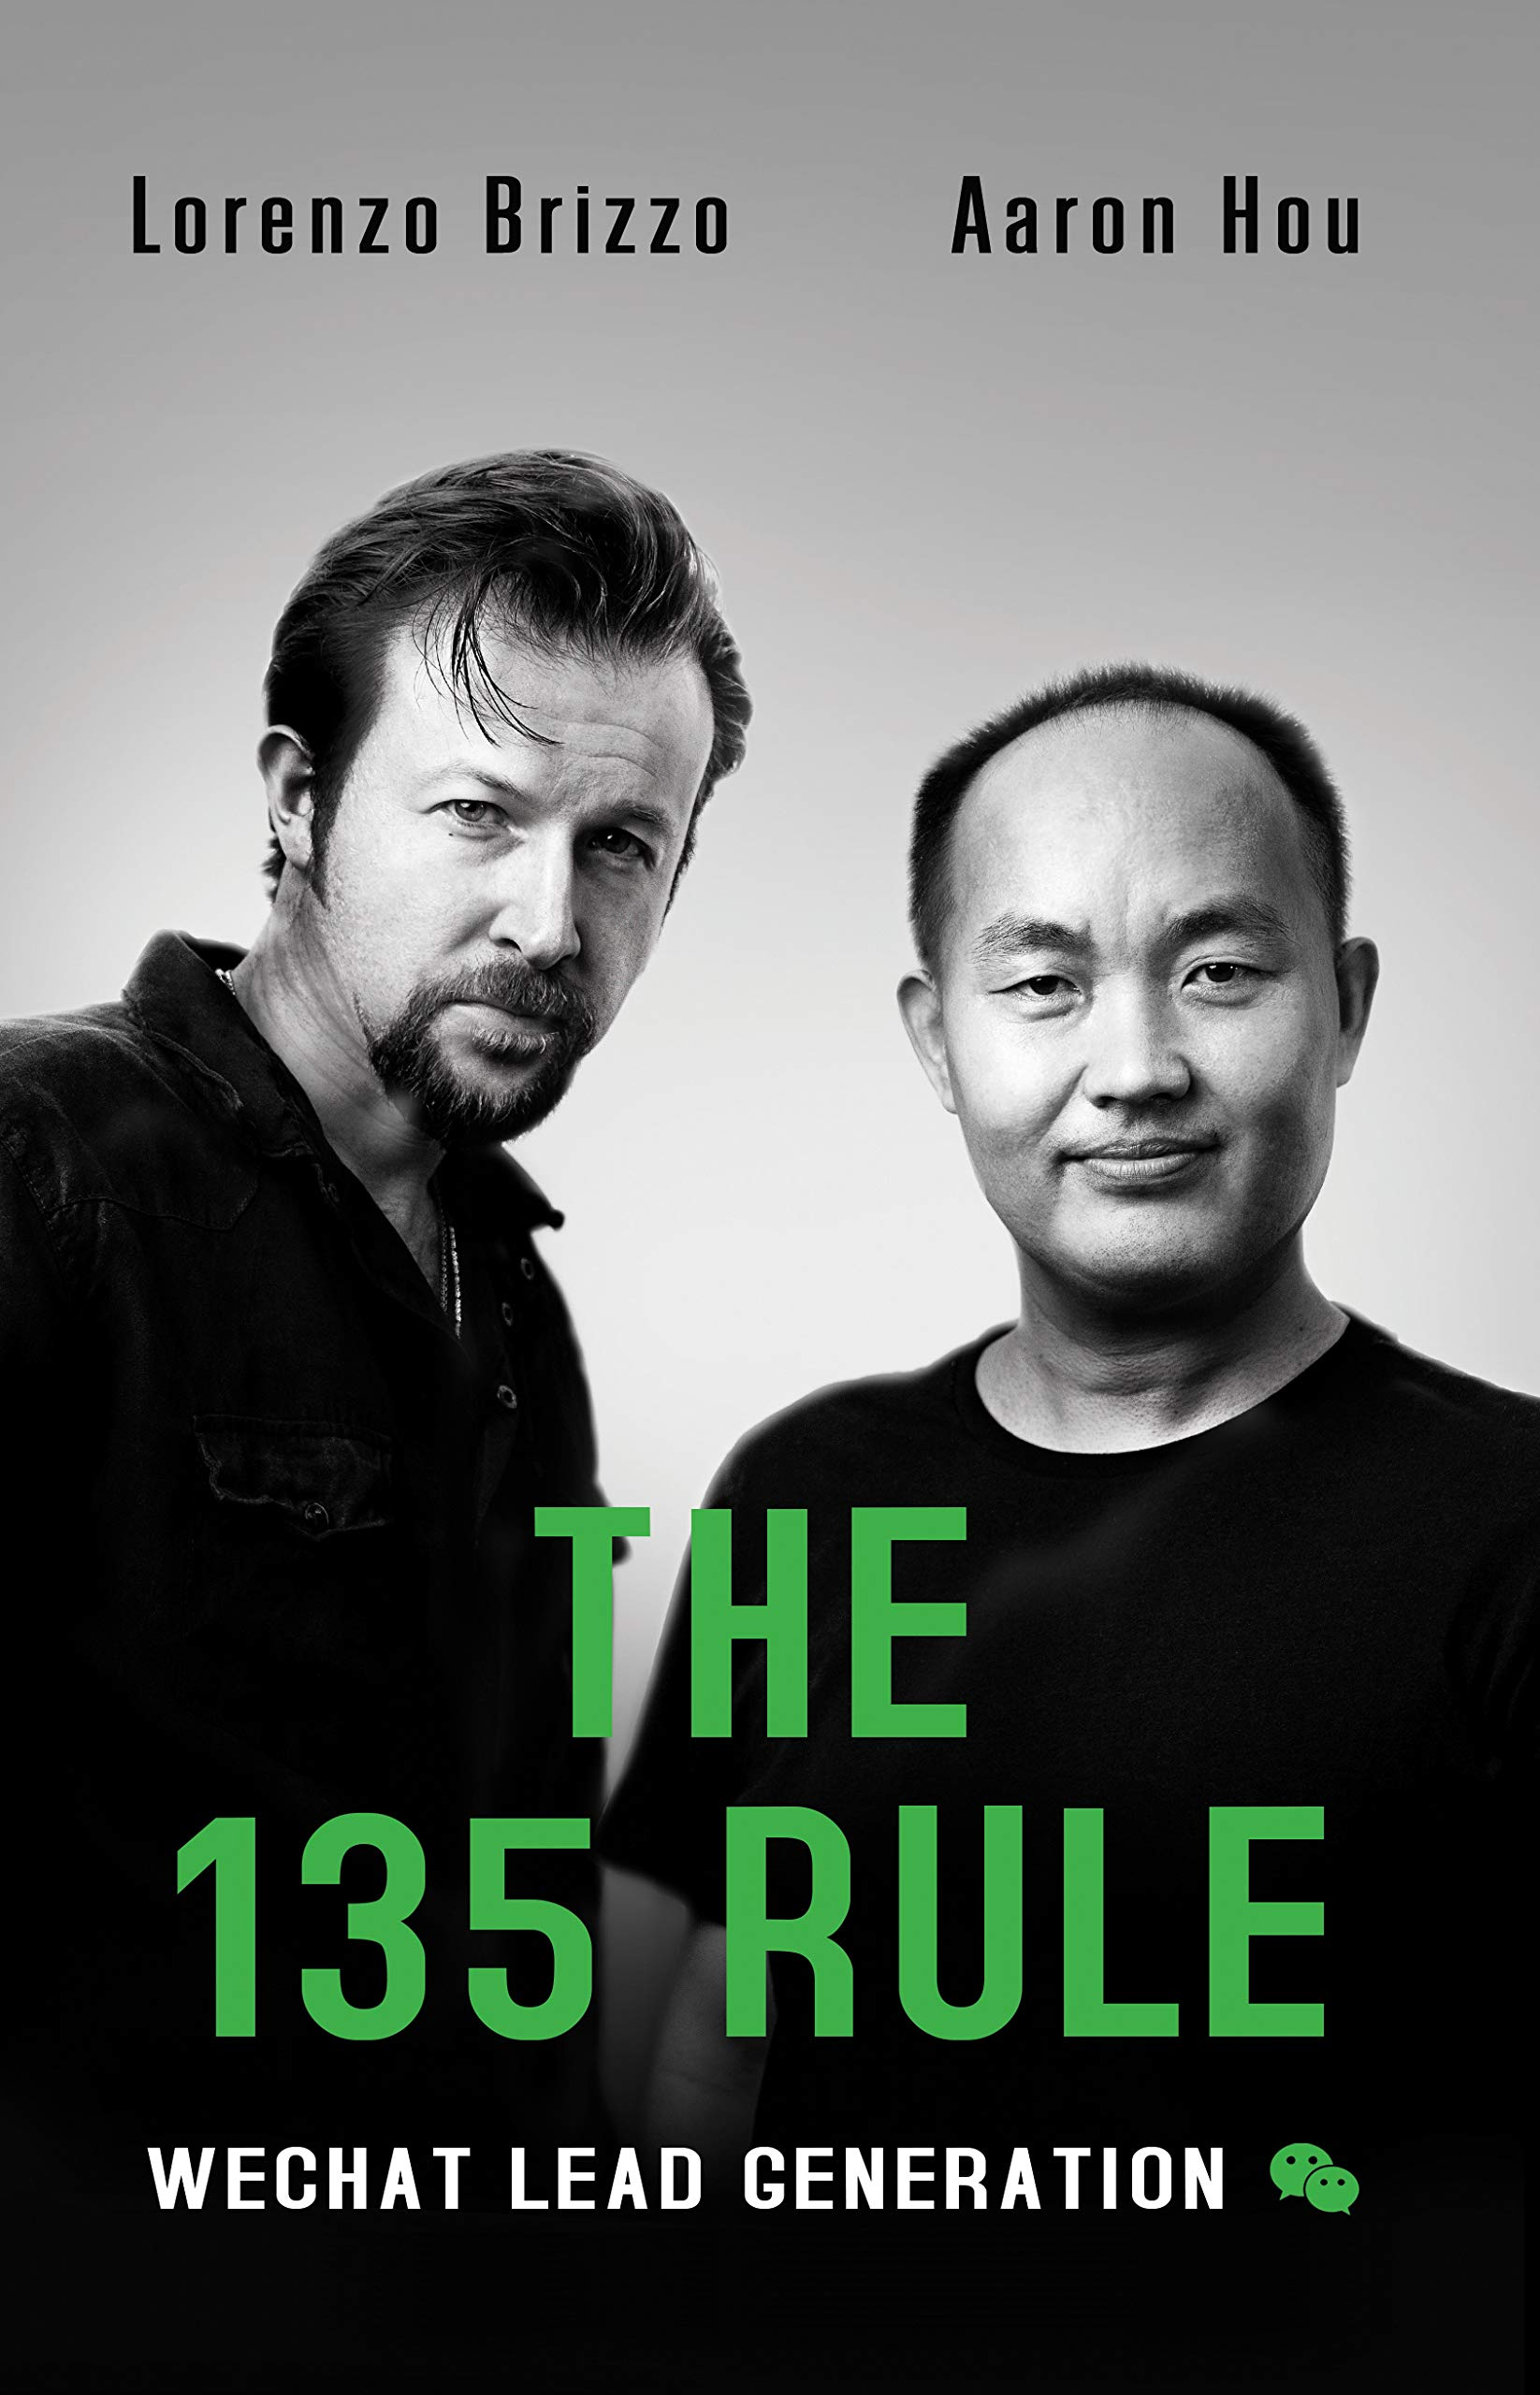 THE 135 RULE - Lead Generation on WeChat